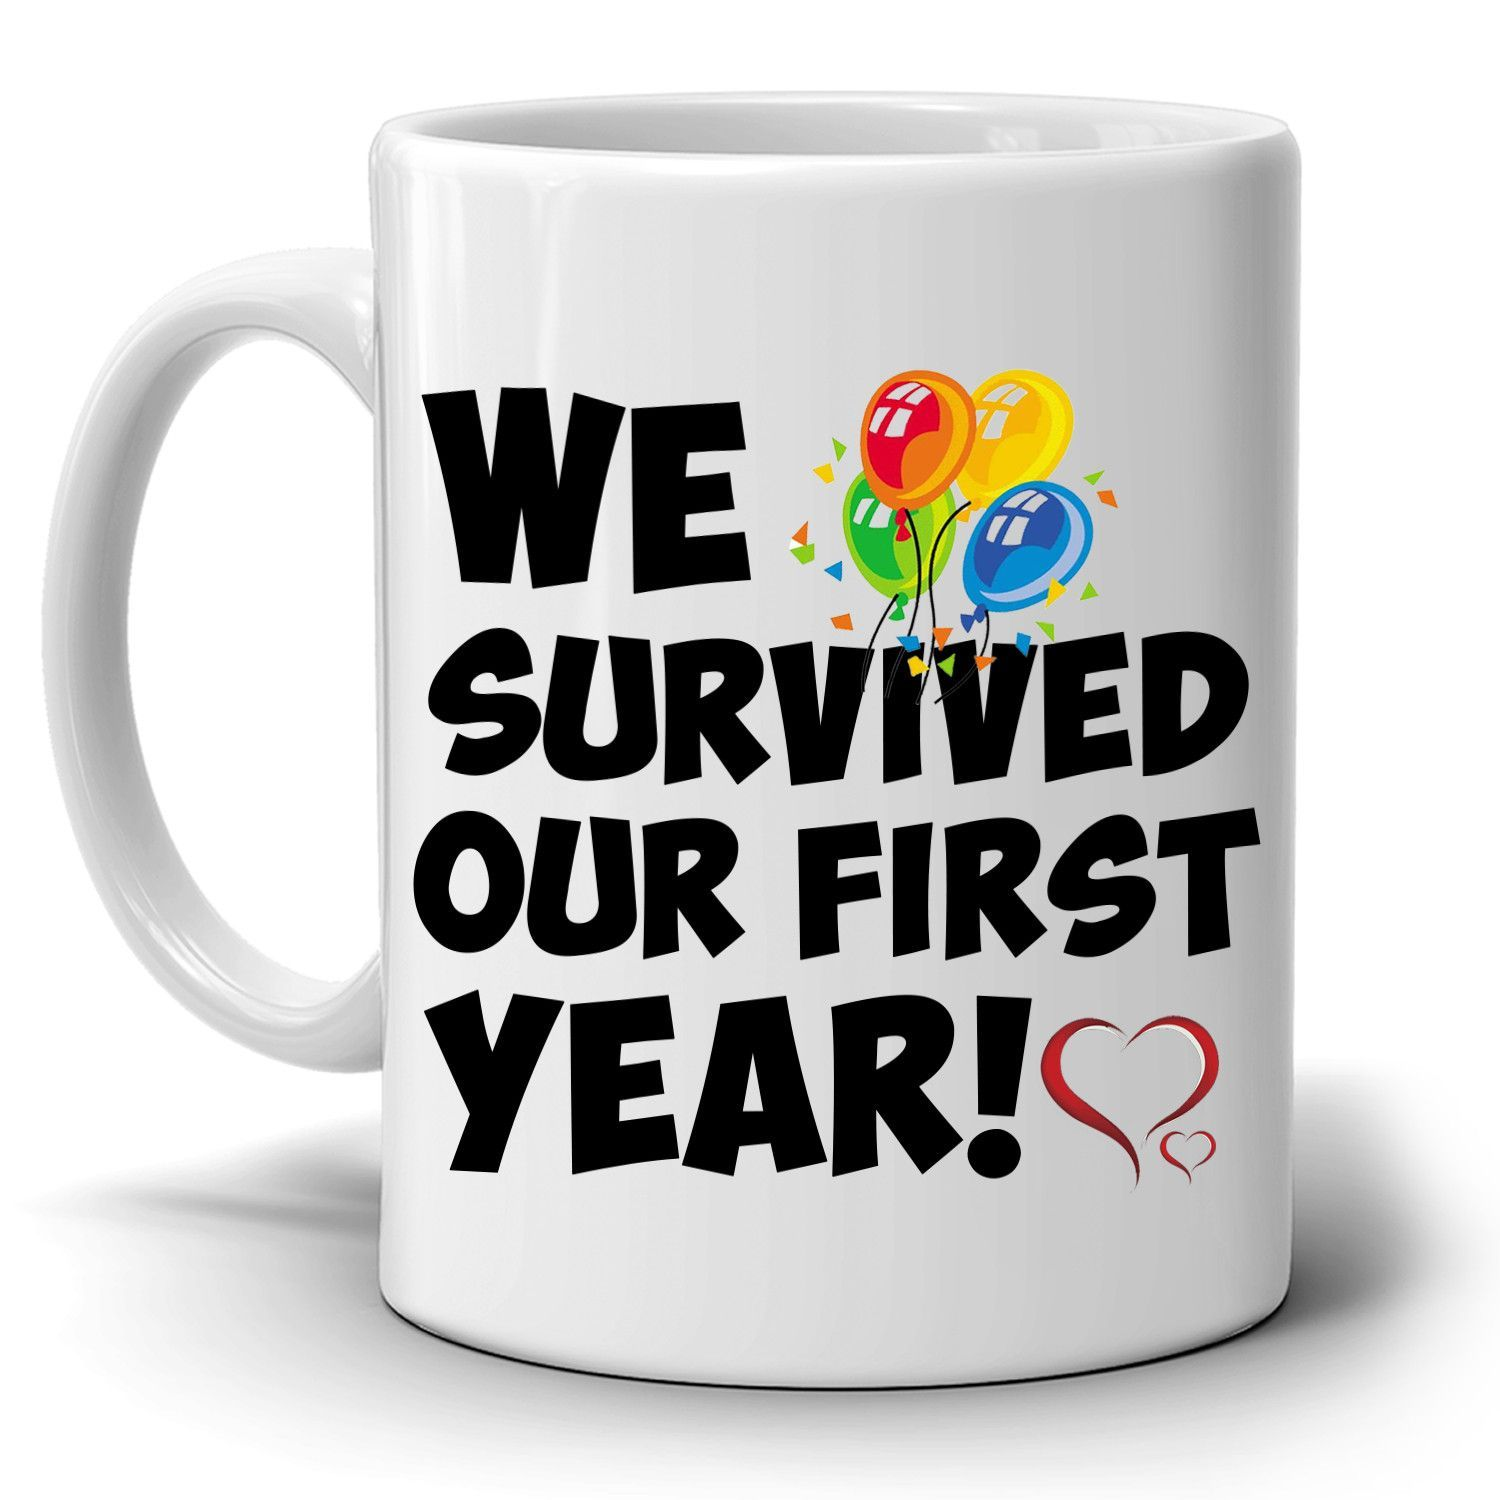 We Survived Our First Year! Couple's Coffee Mug One